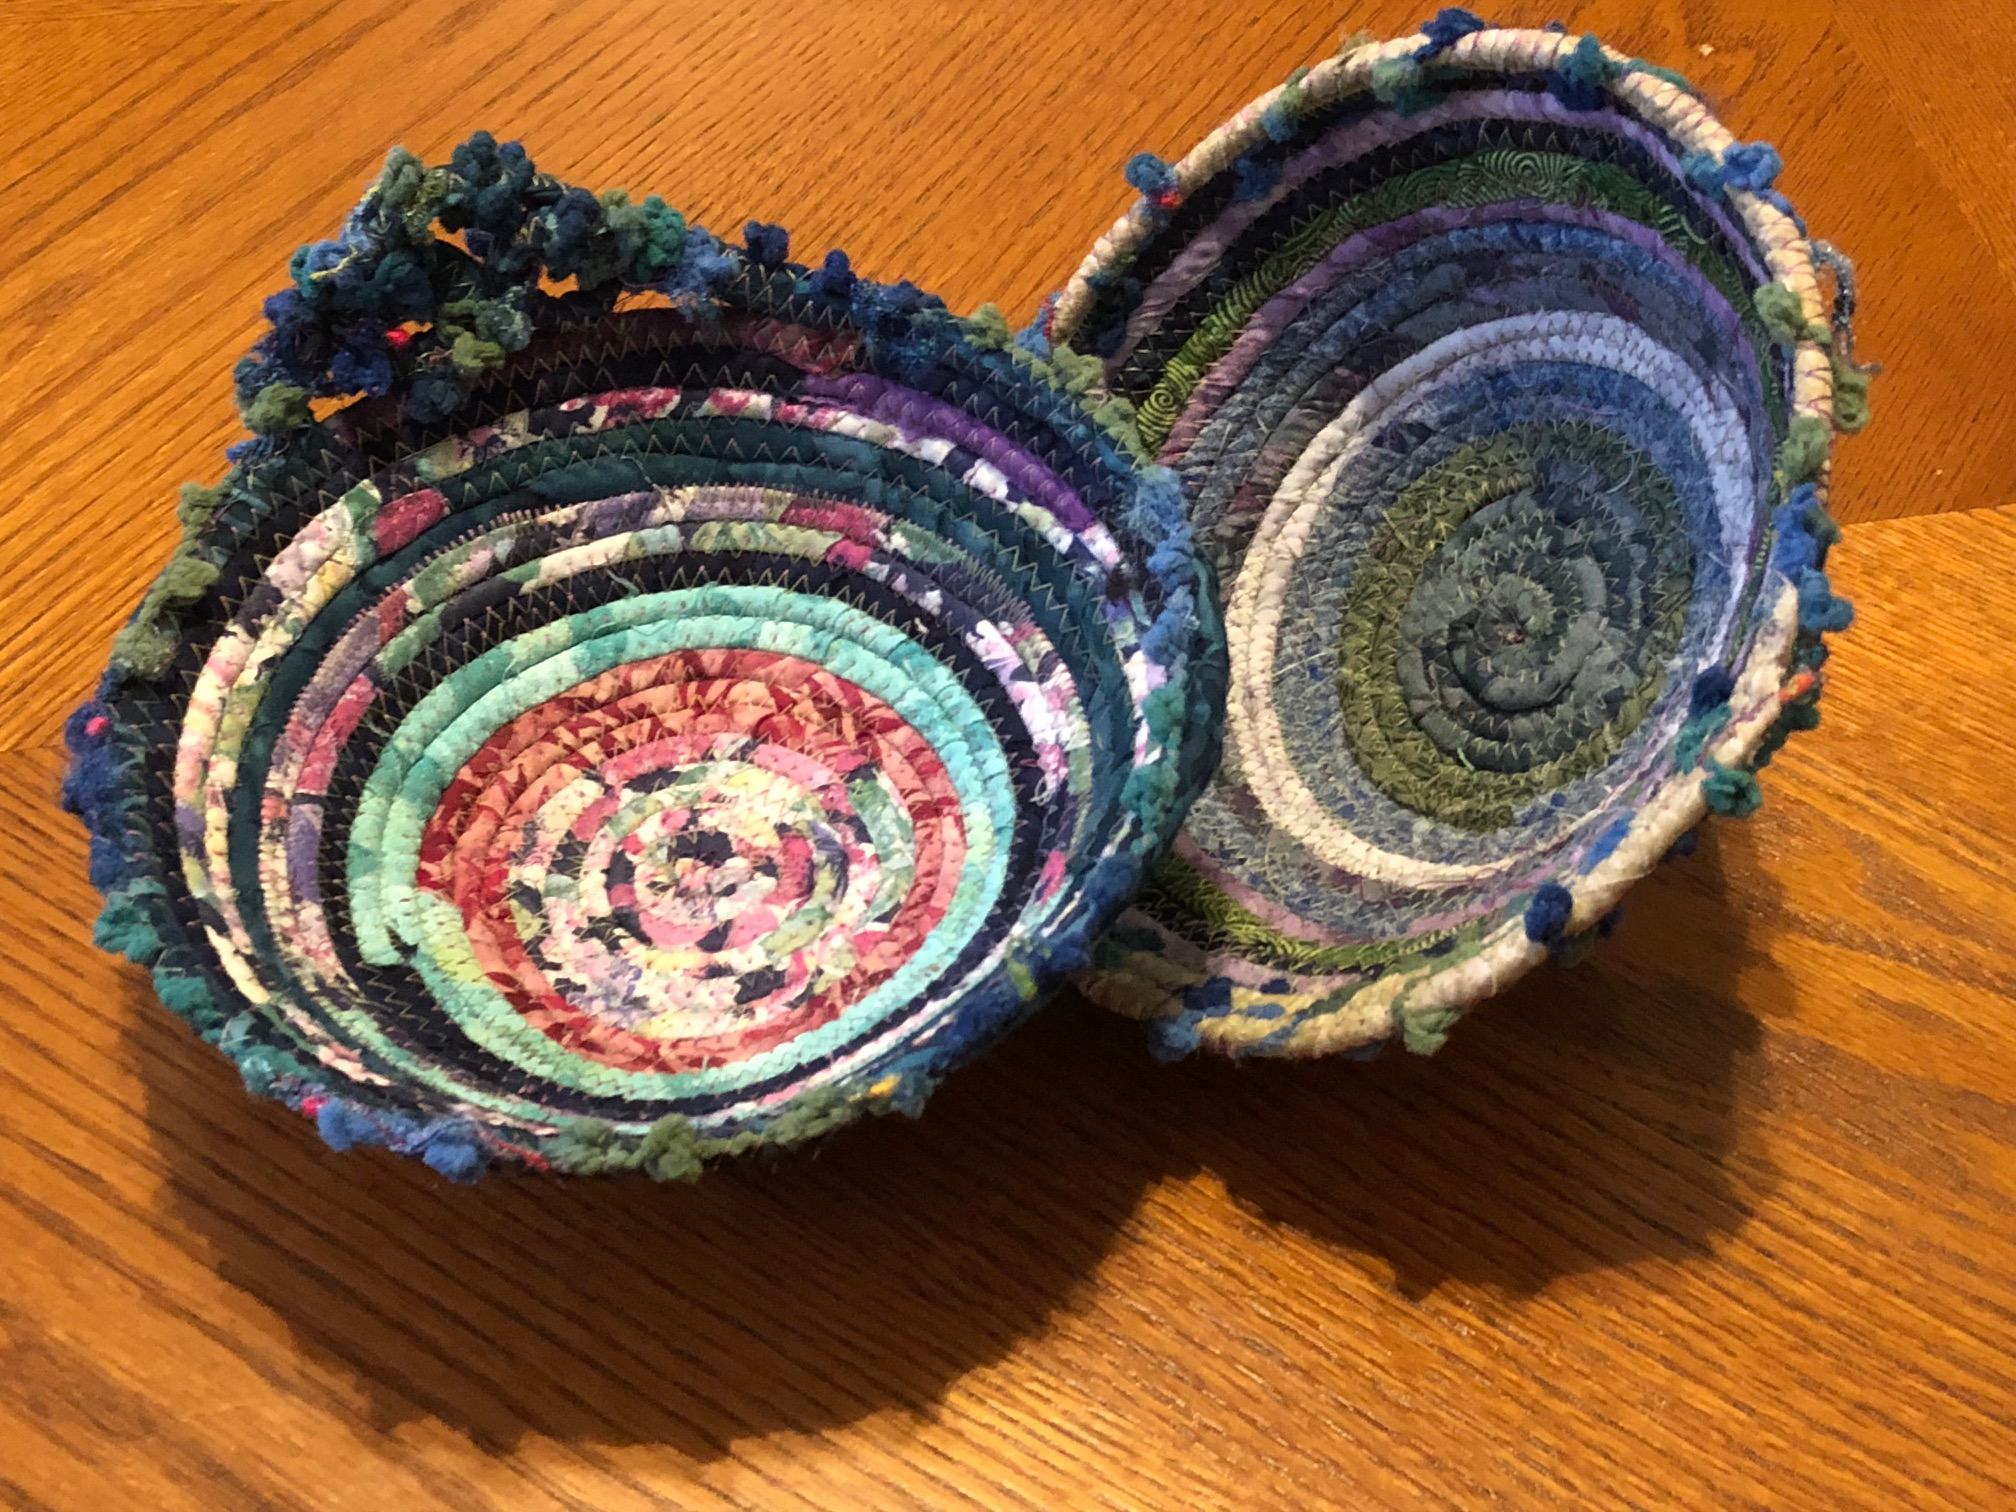 It was many inches of fun stitching to create these bowls. The class really enjoyed seeing how easy these are to make.